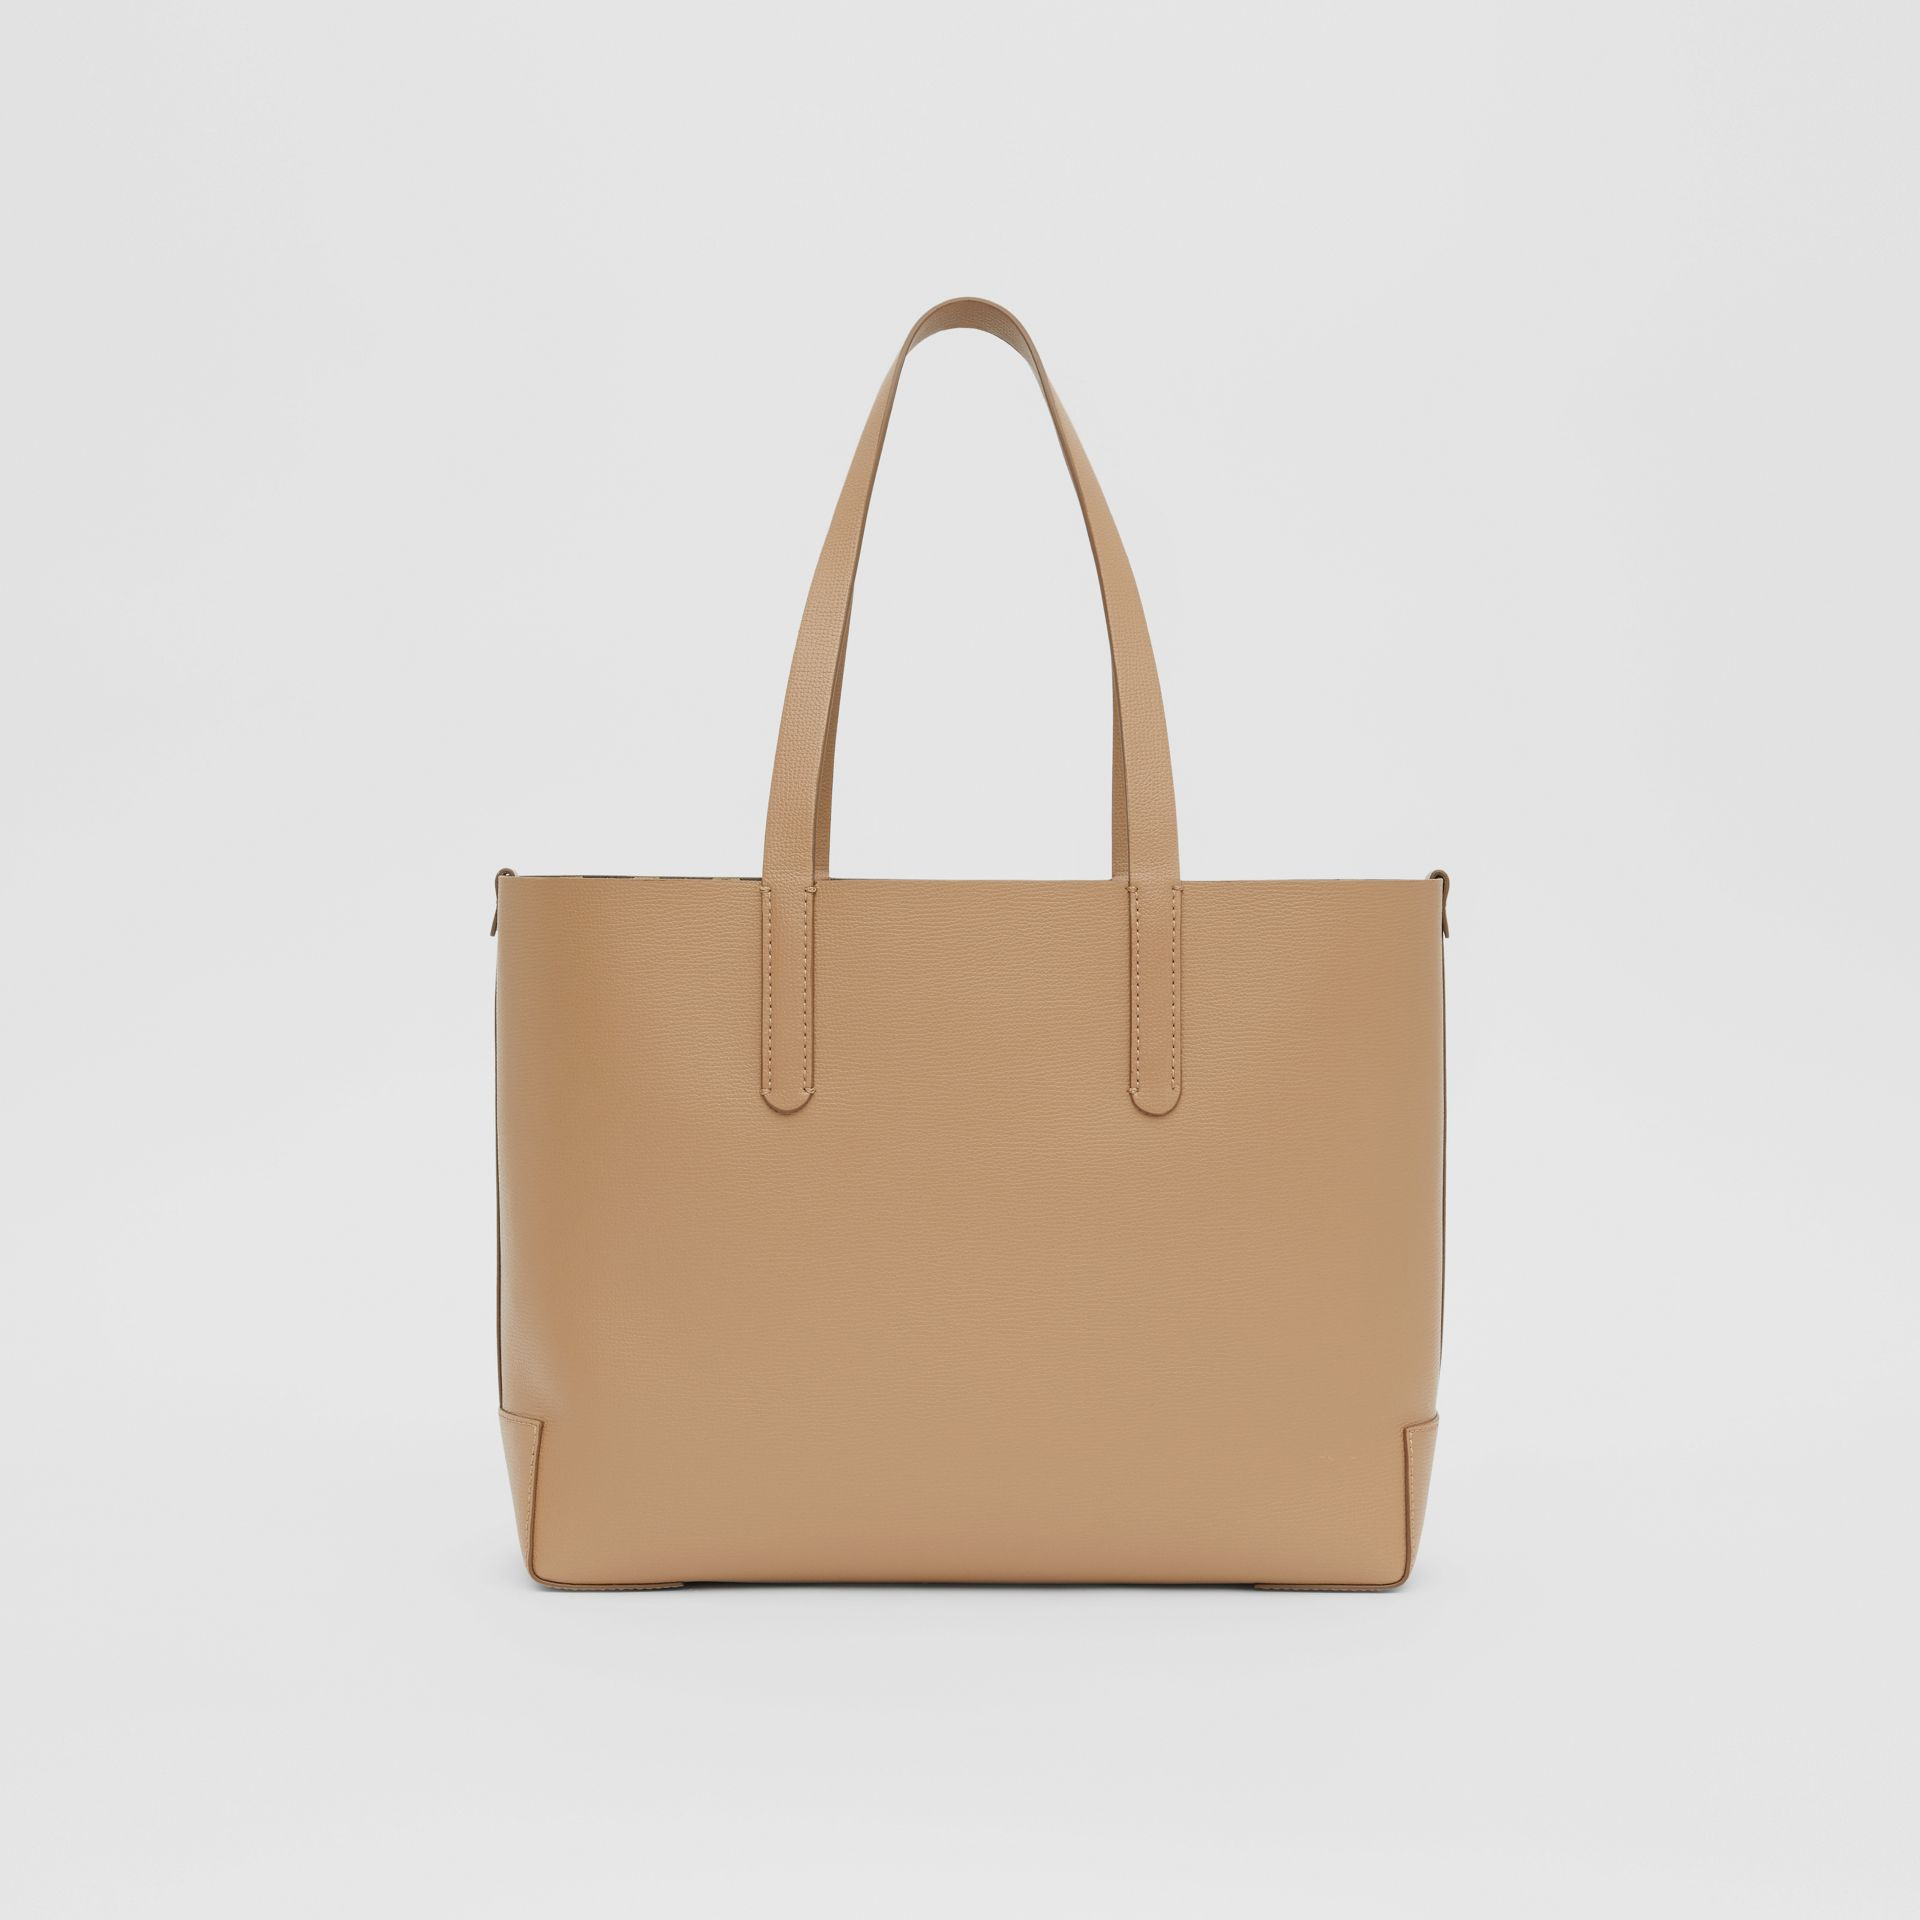 Embossed Monogram Motif Leather Tote in Camel - Women | Burberry United Kingdom - gallery image 9